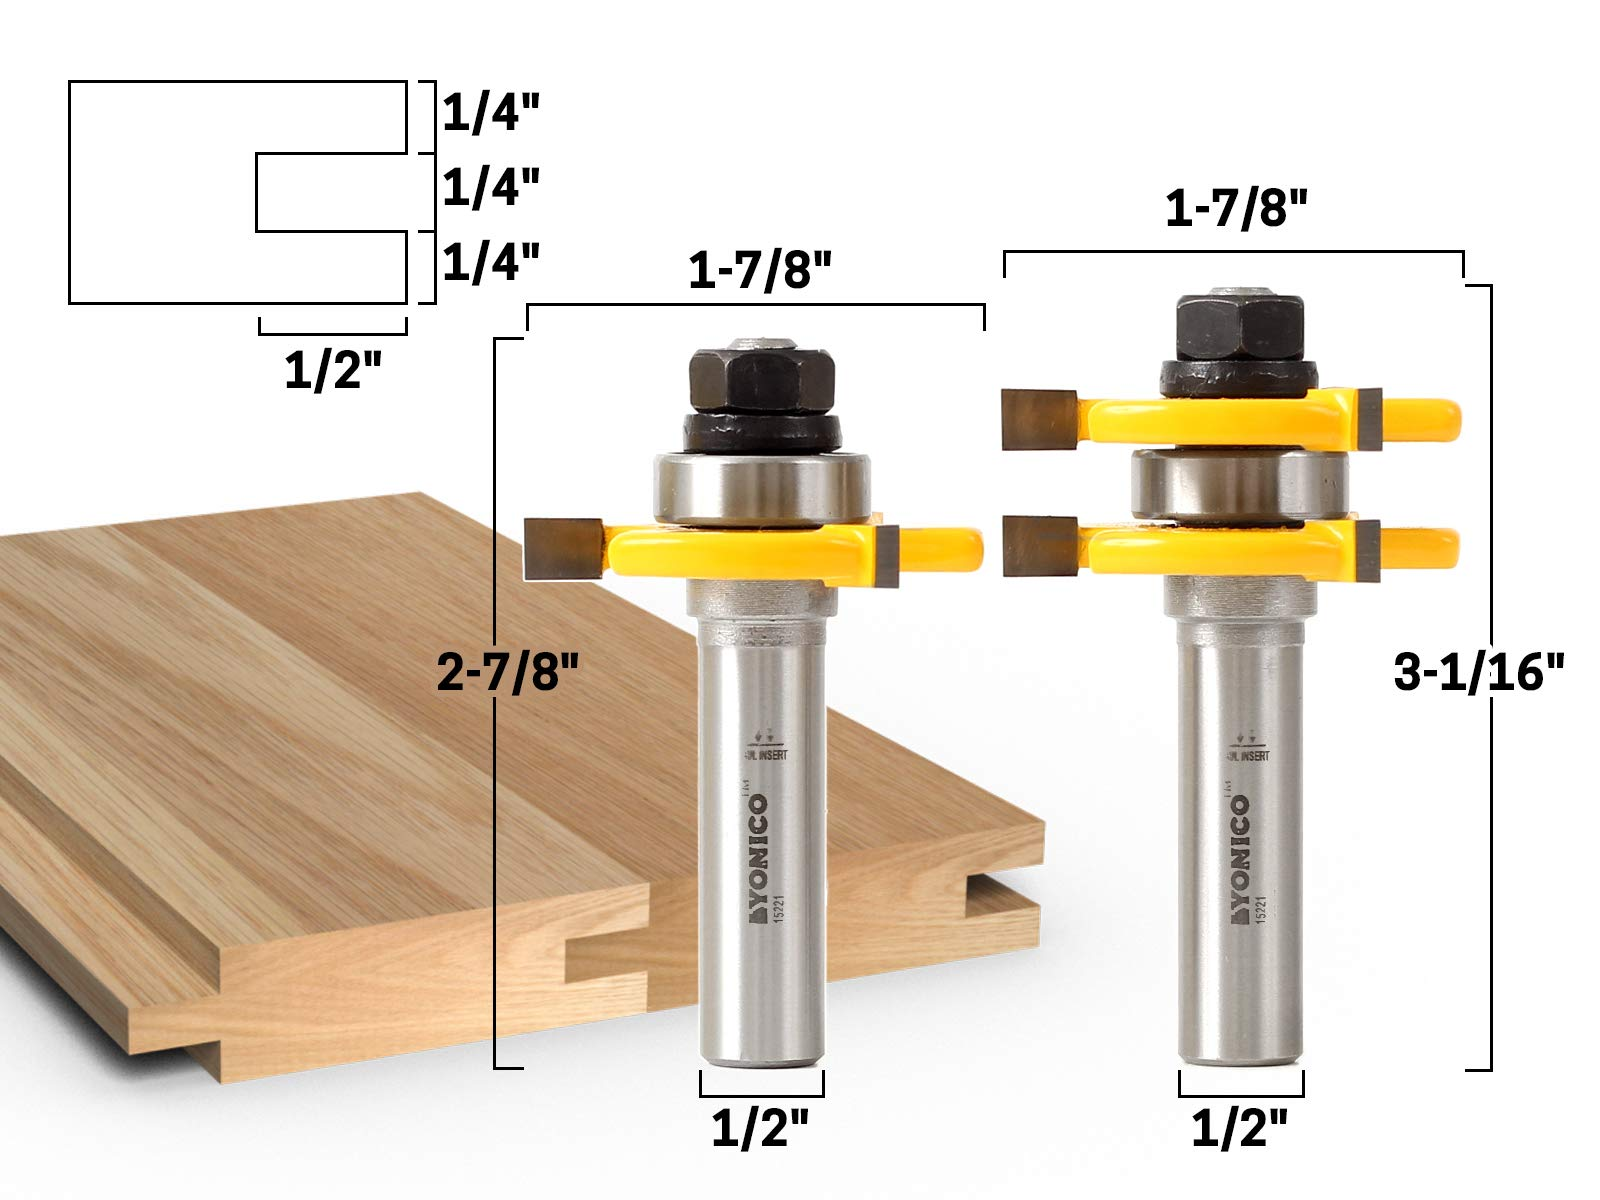 Yonico 15221 3/4-Inch 2 Bit Tongue and Groove Router Bit Set 1/2-Inch Shank by Yonico